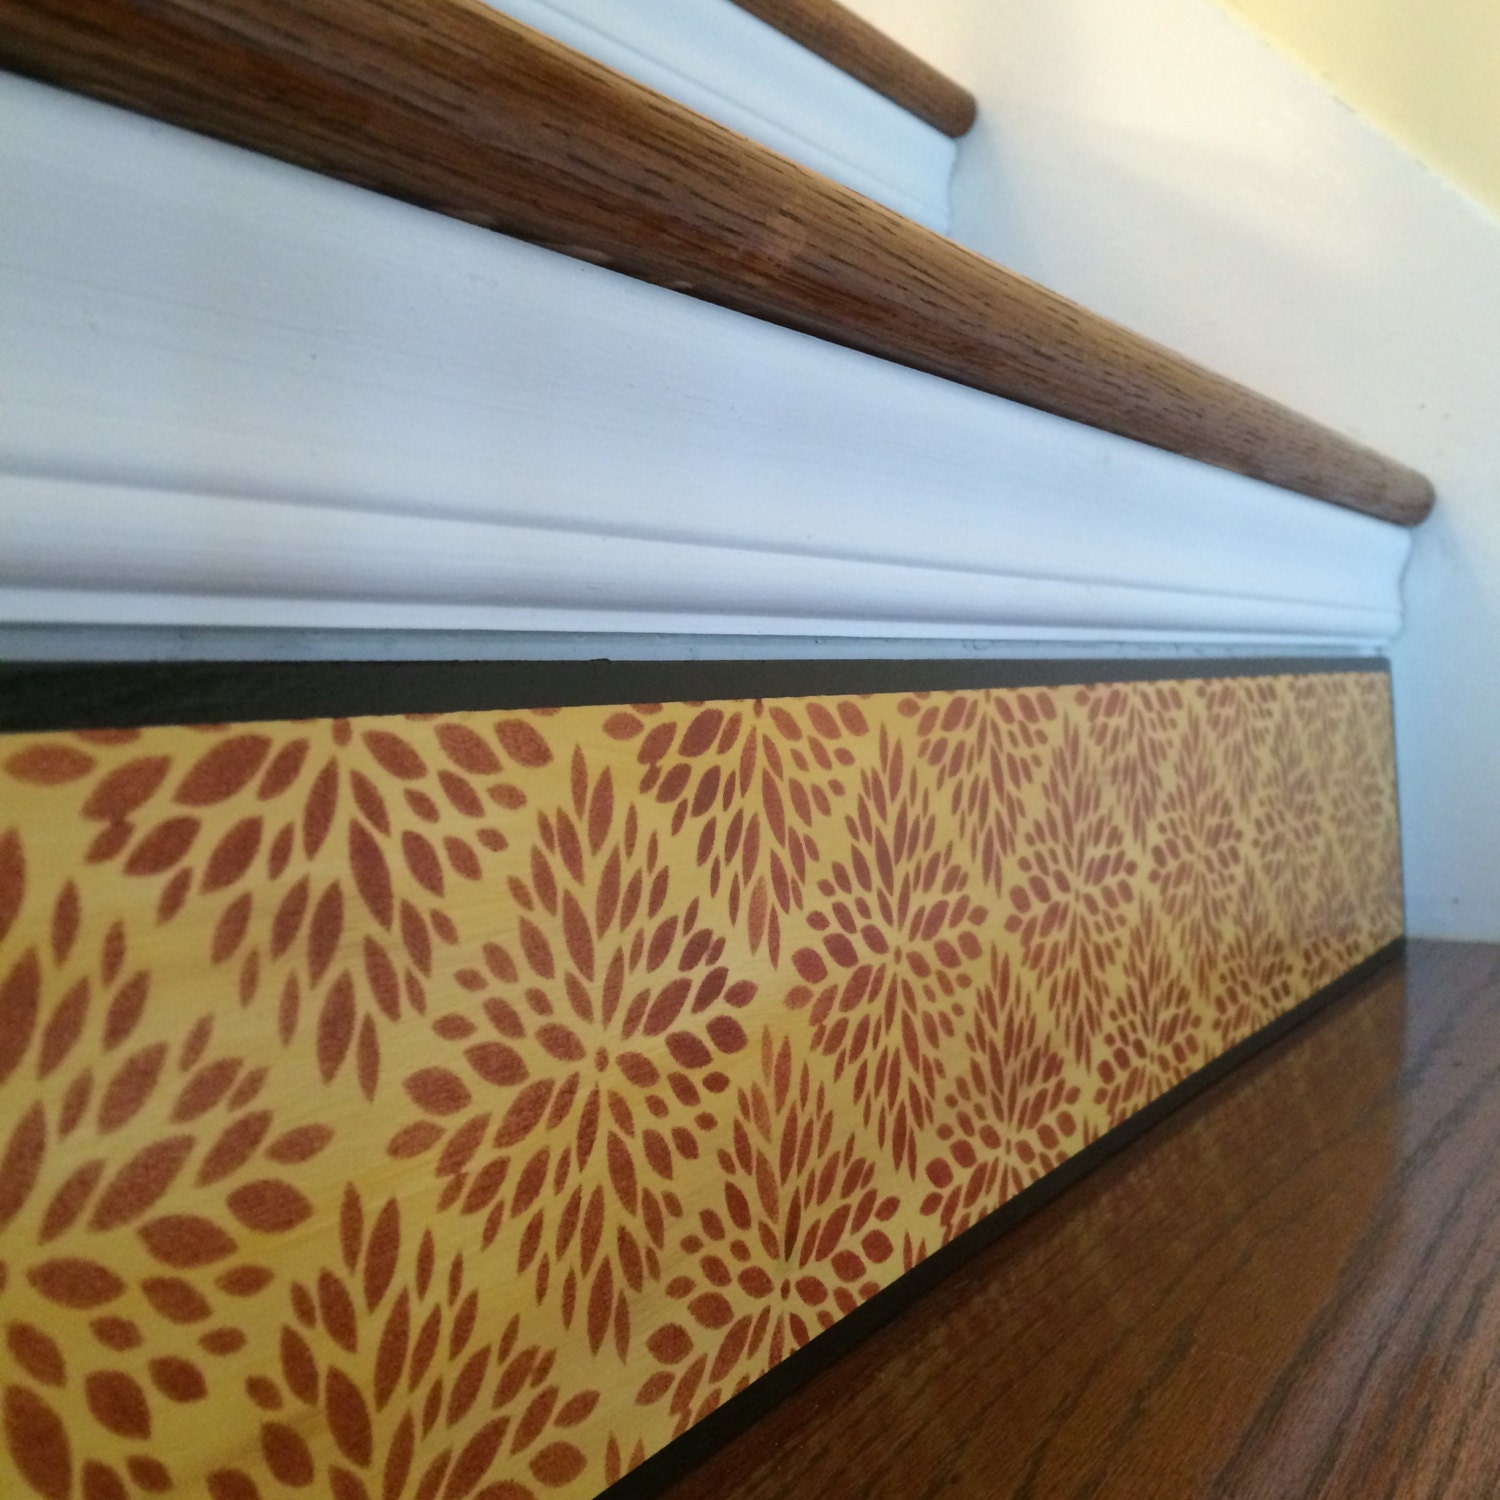 Carved Wood Stair Risers Stair Ideas Stamped Leather: Geometric Floral / Moroccan Decor / Moroccan Lattice / Modern